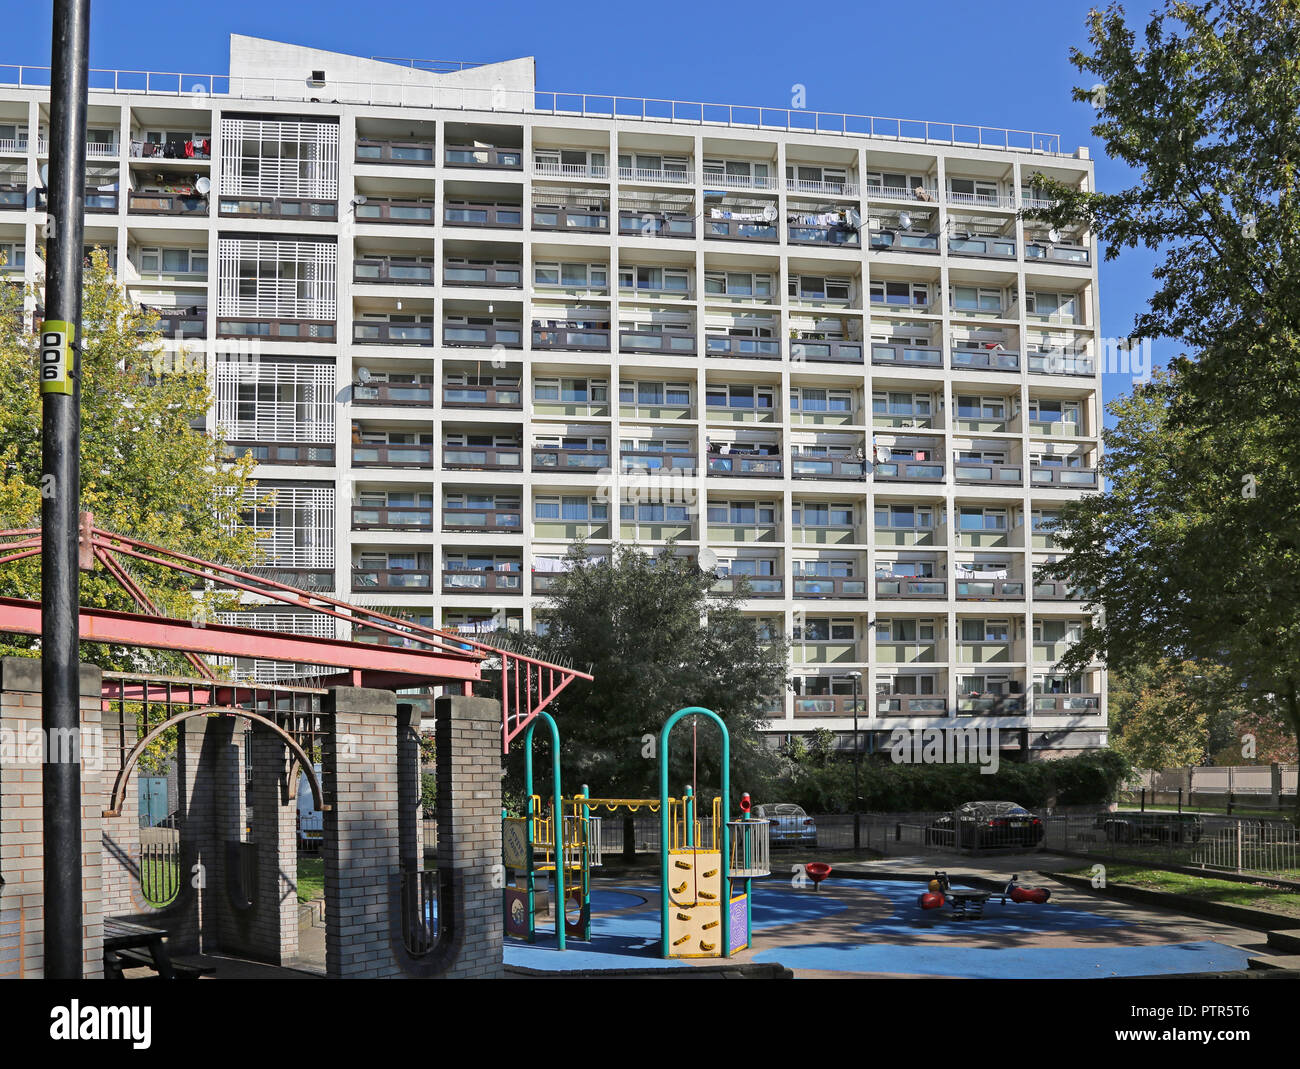 Wimbourne House, Kennington, London. A typical 1960's multi-storey local authority housing block in the south London borough of Lambeth. - Stock Image